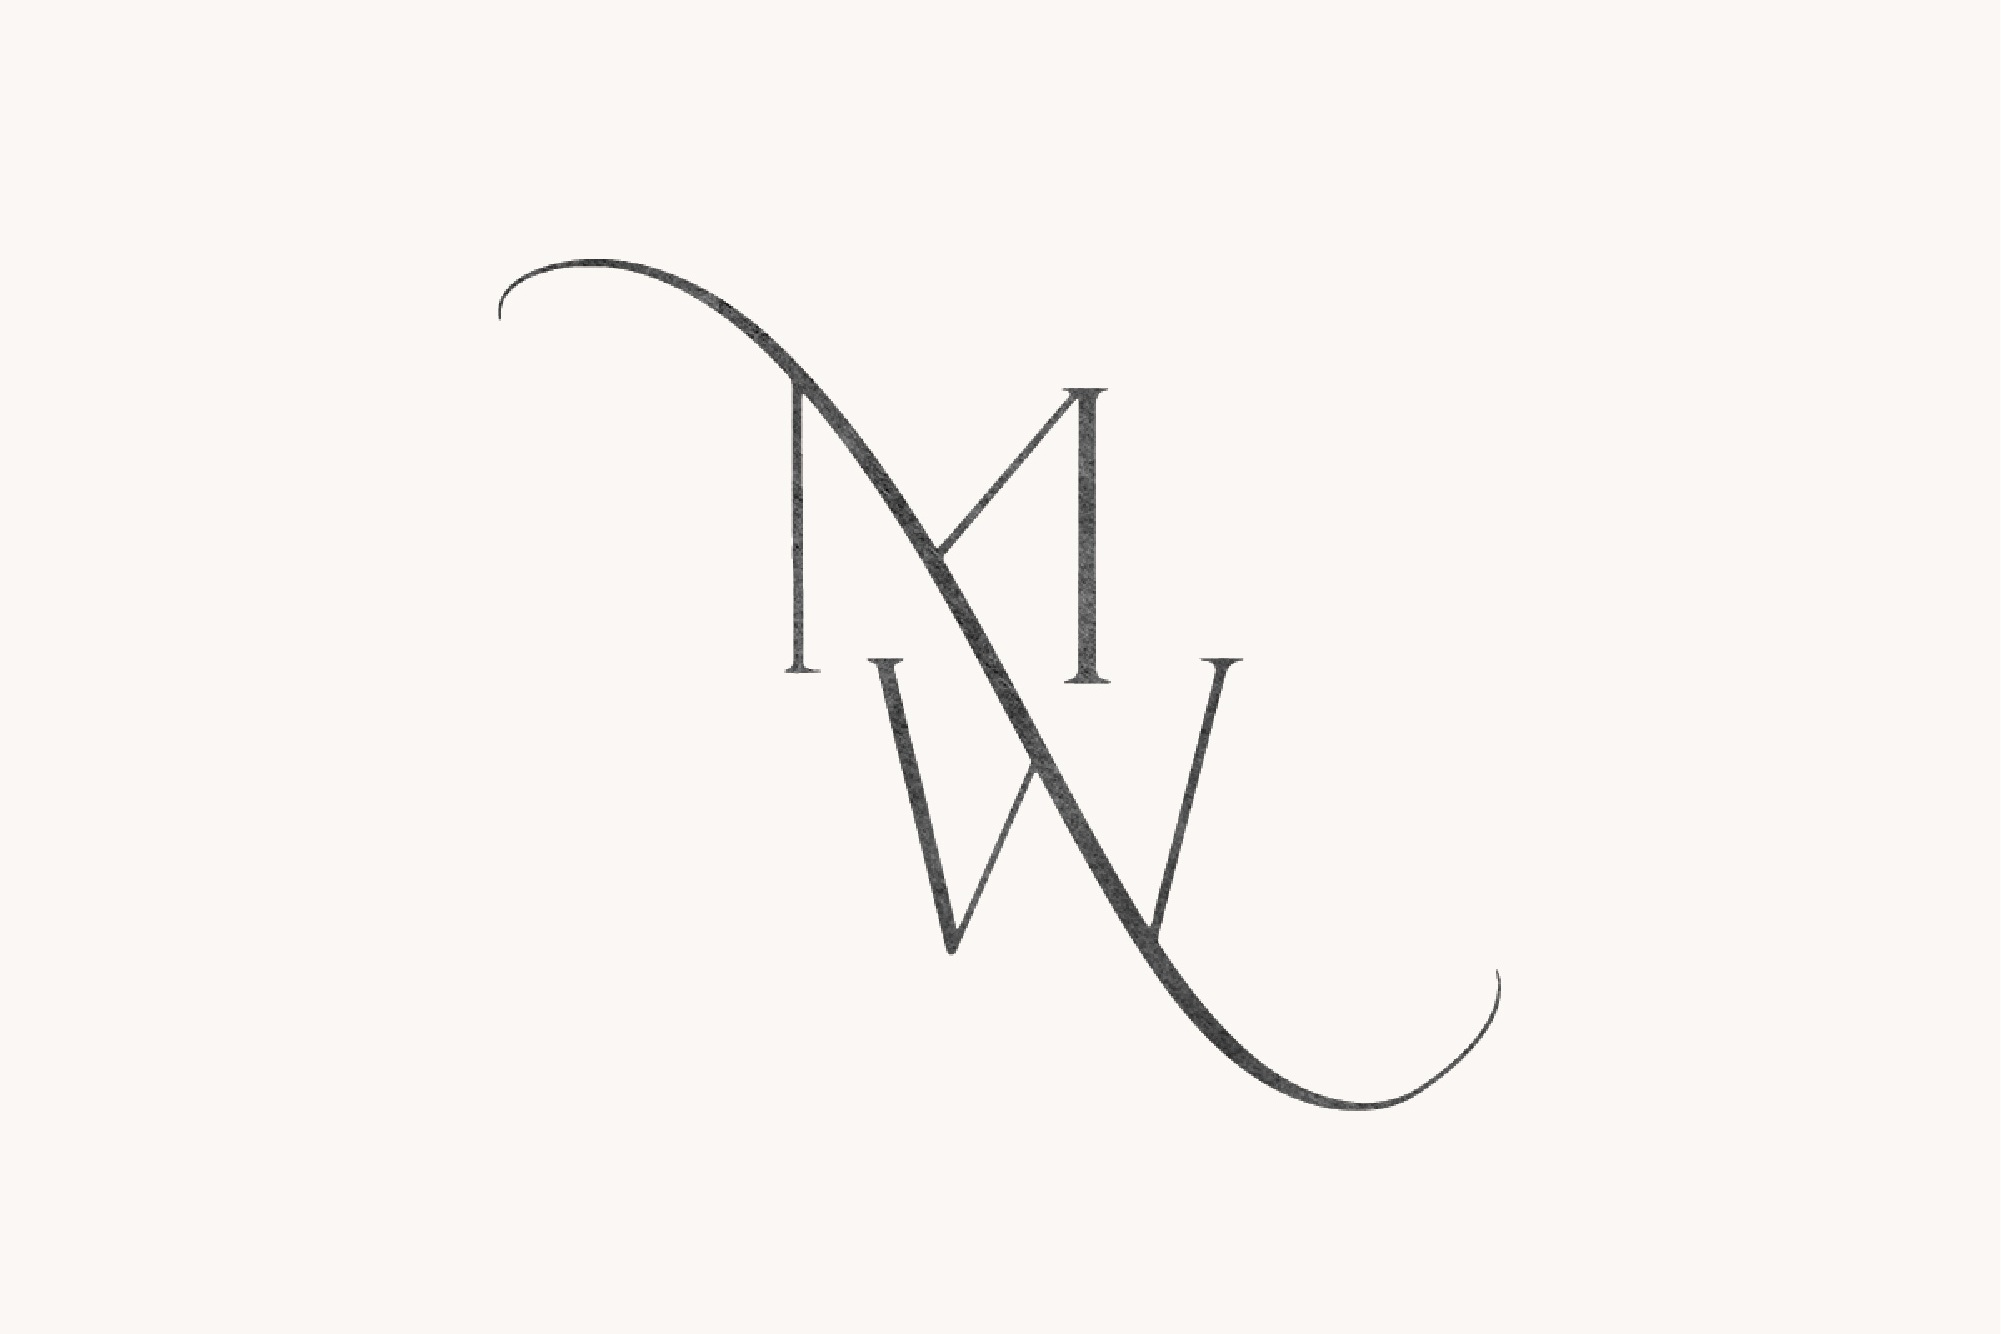 Branding and logo design for creative small businesses. Elegant and timeless logos that emphasize core values.